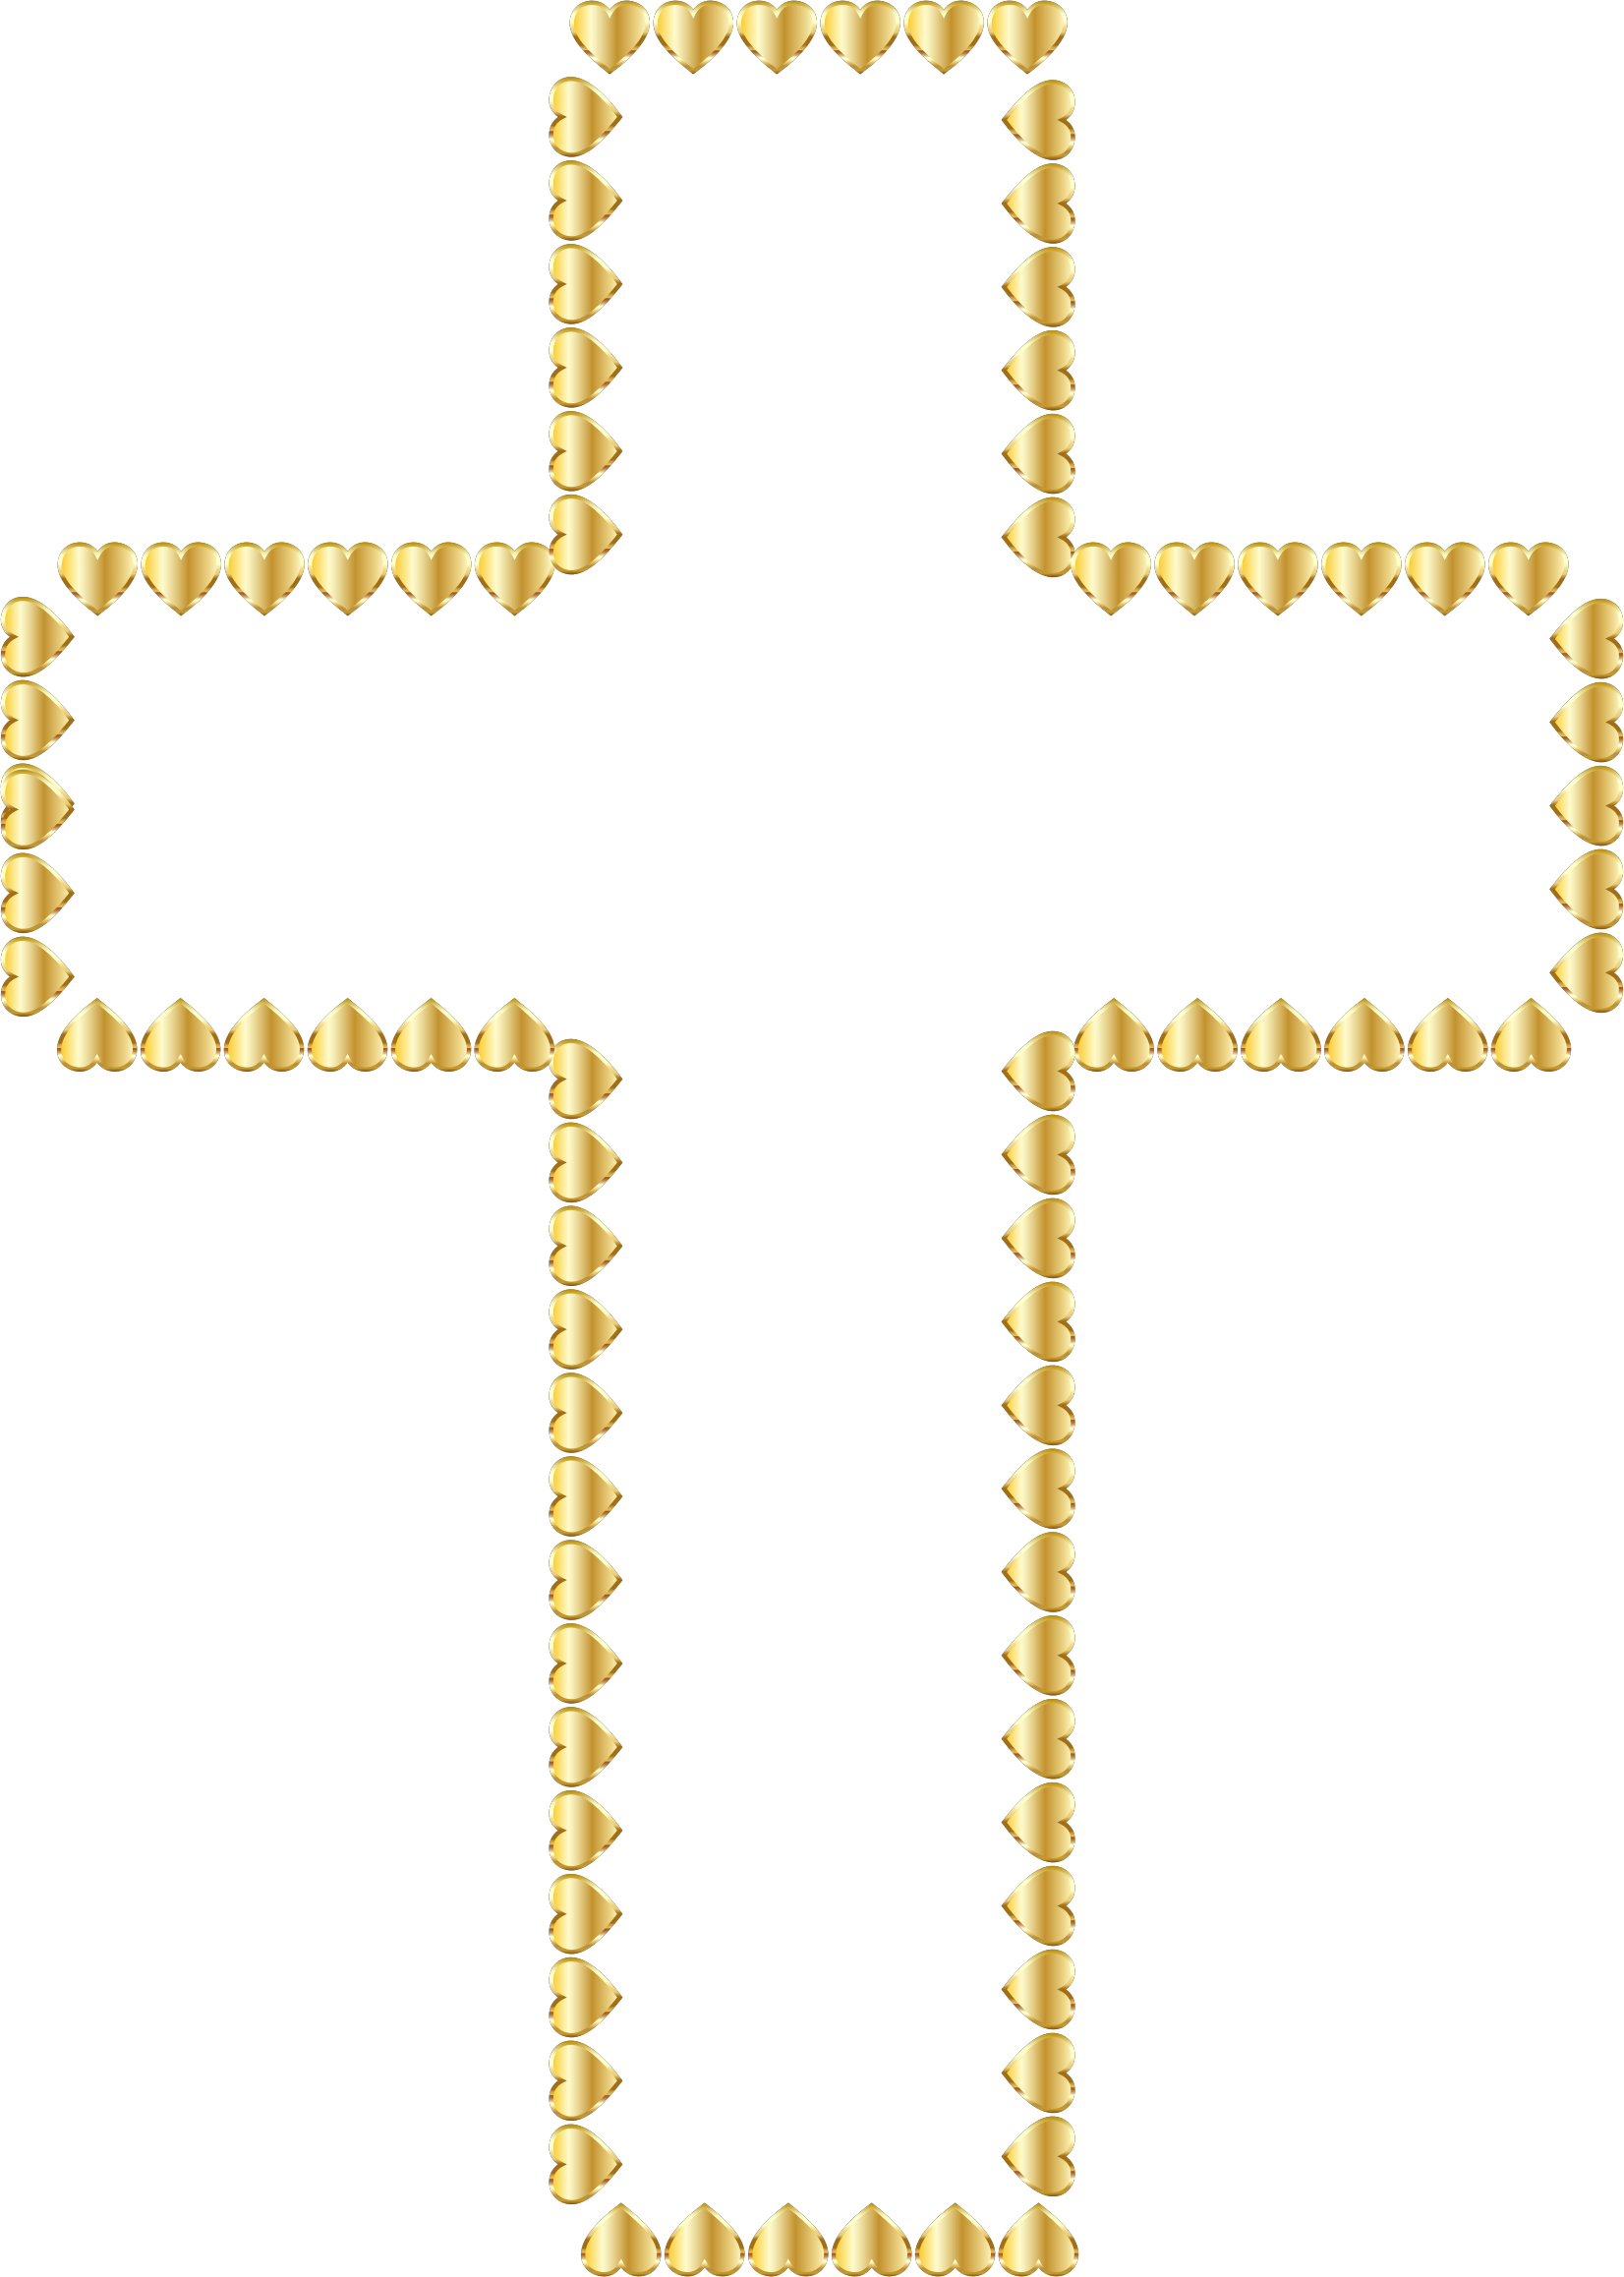 Ornate cross clipart image library stock Golden Cross Hearts No Background by GDJ | komunia | Pinterest ... image library stock